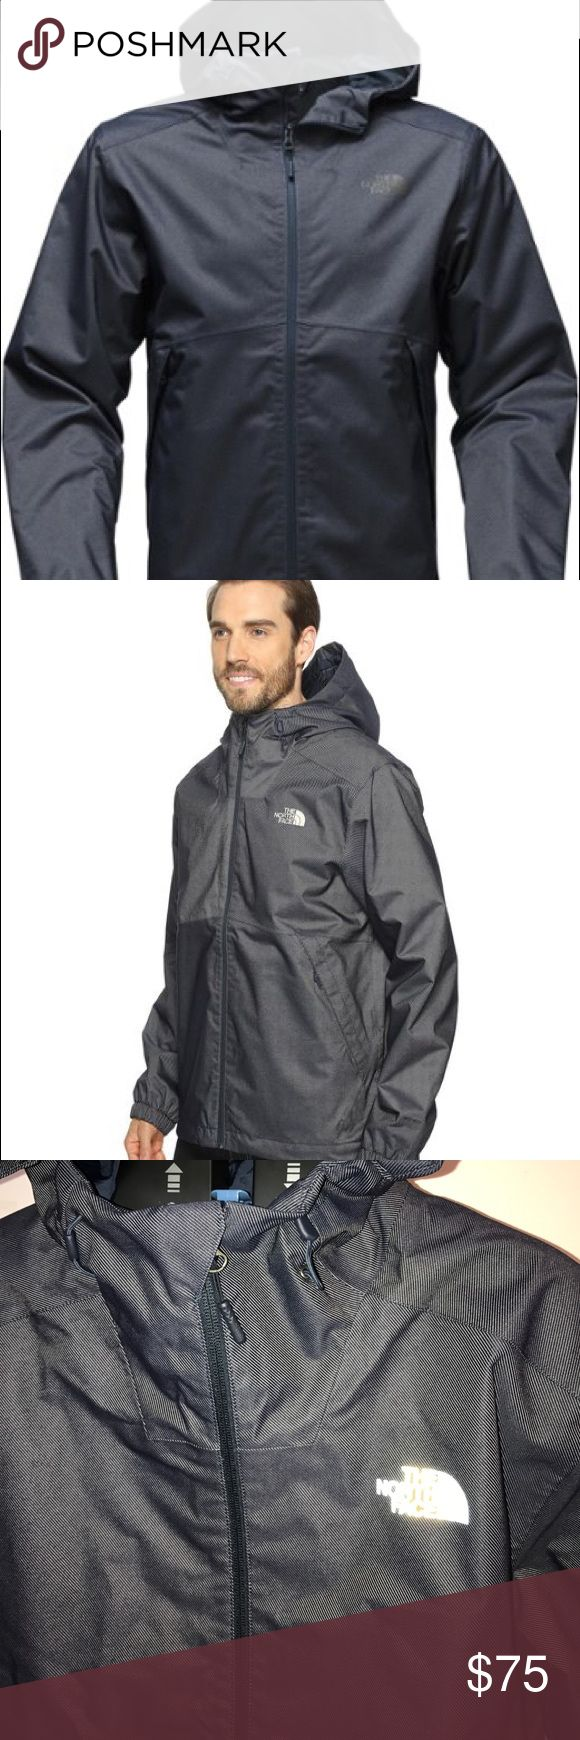 Brand New w/tags!! Men's North Face Rain Jacket Men's North Face Millerton Jacket in Dark Denim Blue.  Water Proof, Wind proof and breathable. Perfect condition  Active fit & Light weight  Waterproof, breathable, seam-sealed DryVent™ 2L shell with soft taffeta lining Attached, fully adjustable hood Exposed center front zip Secure-zip covered hand pockets Elastic cuffs Hem cinch-cord.                                                                Fit is true to size and sleeves are true to…